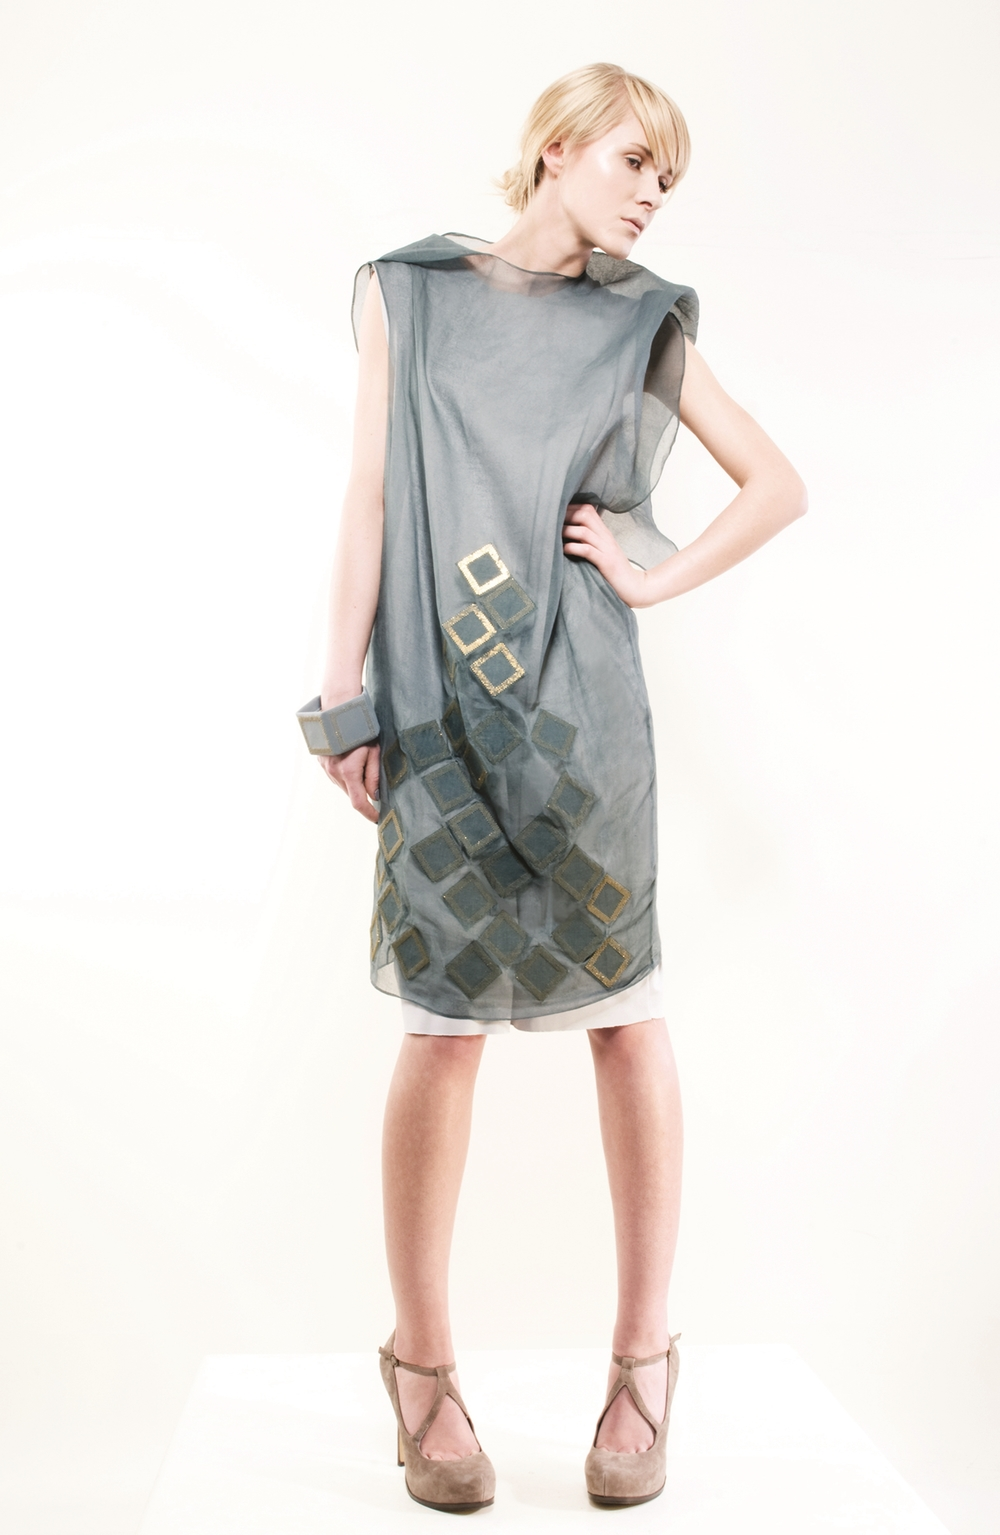 outfit-1-Gravity-and-Levitation-Spring-Summer-Collection-Isabel-Wong-Green-Organdy-Gold-CPU.jpg